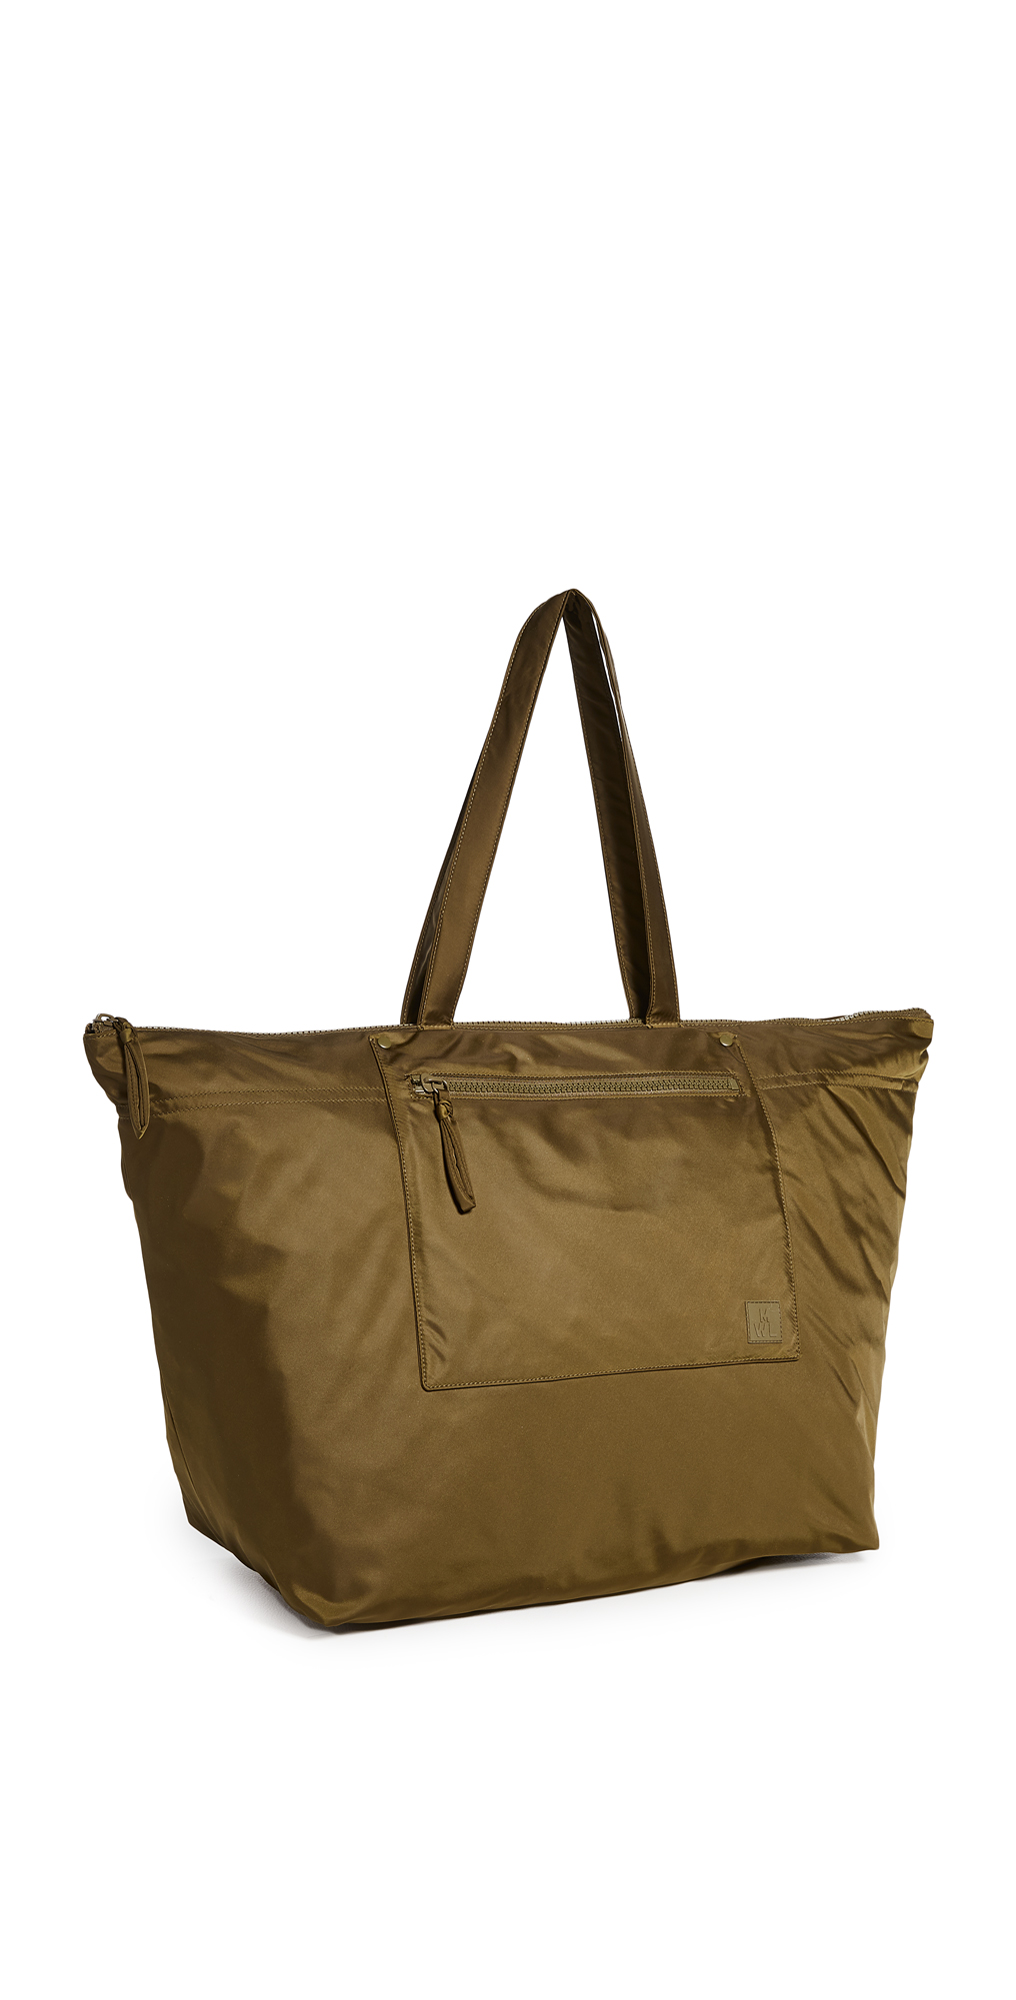 Madewell Travel Nylon Weekender